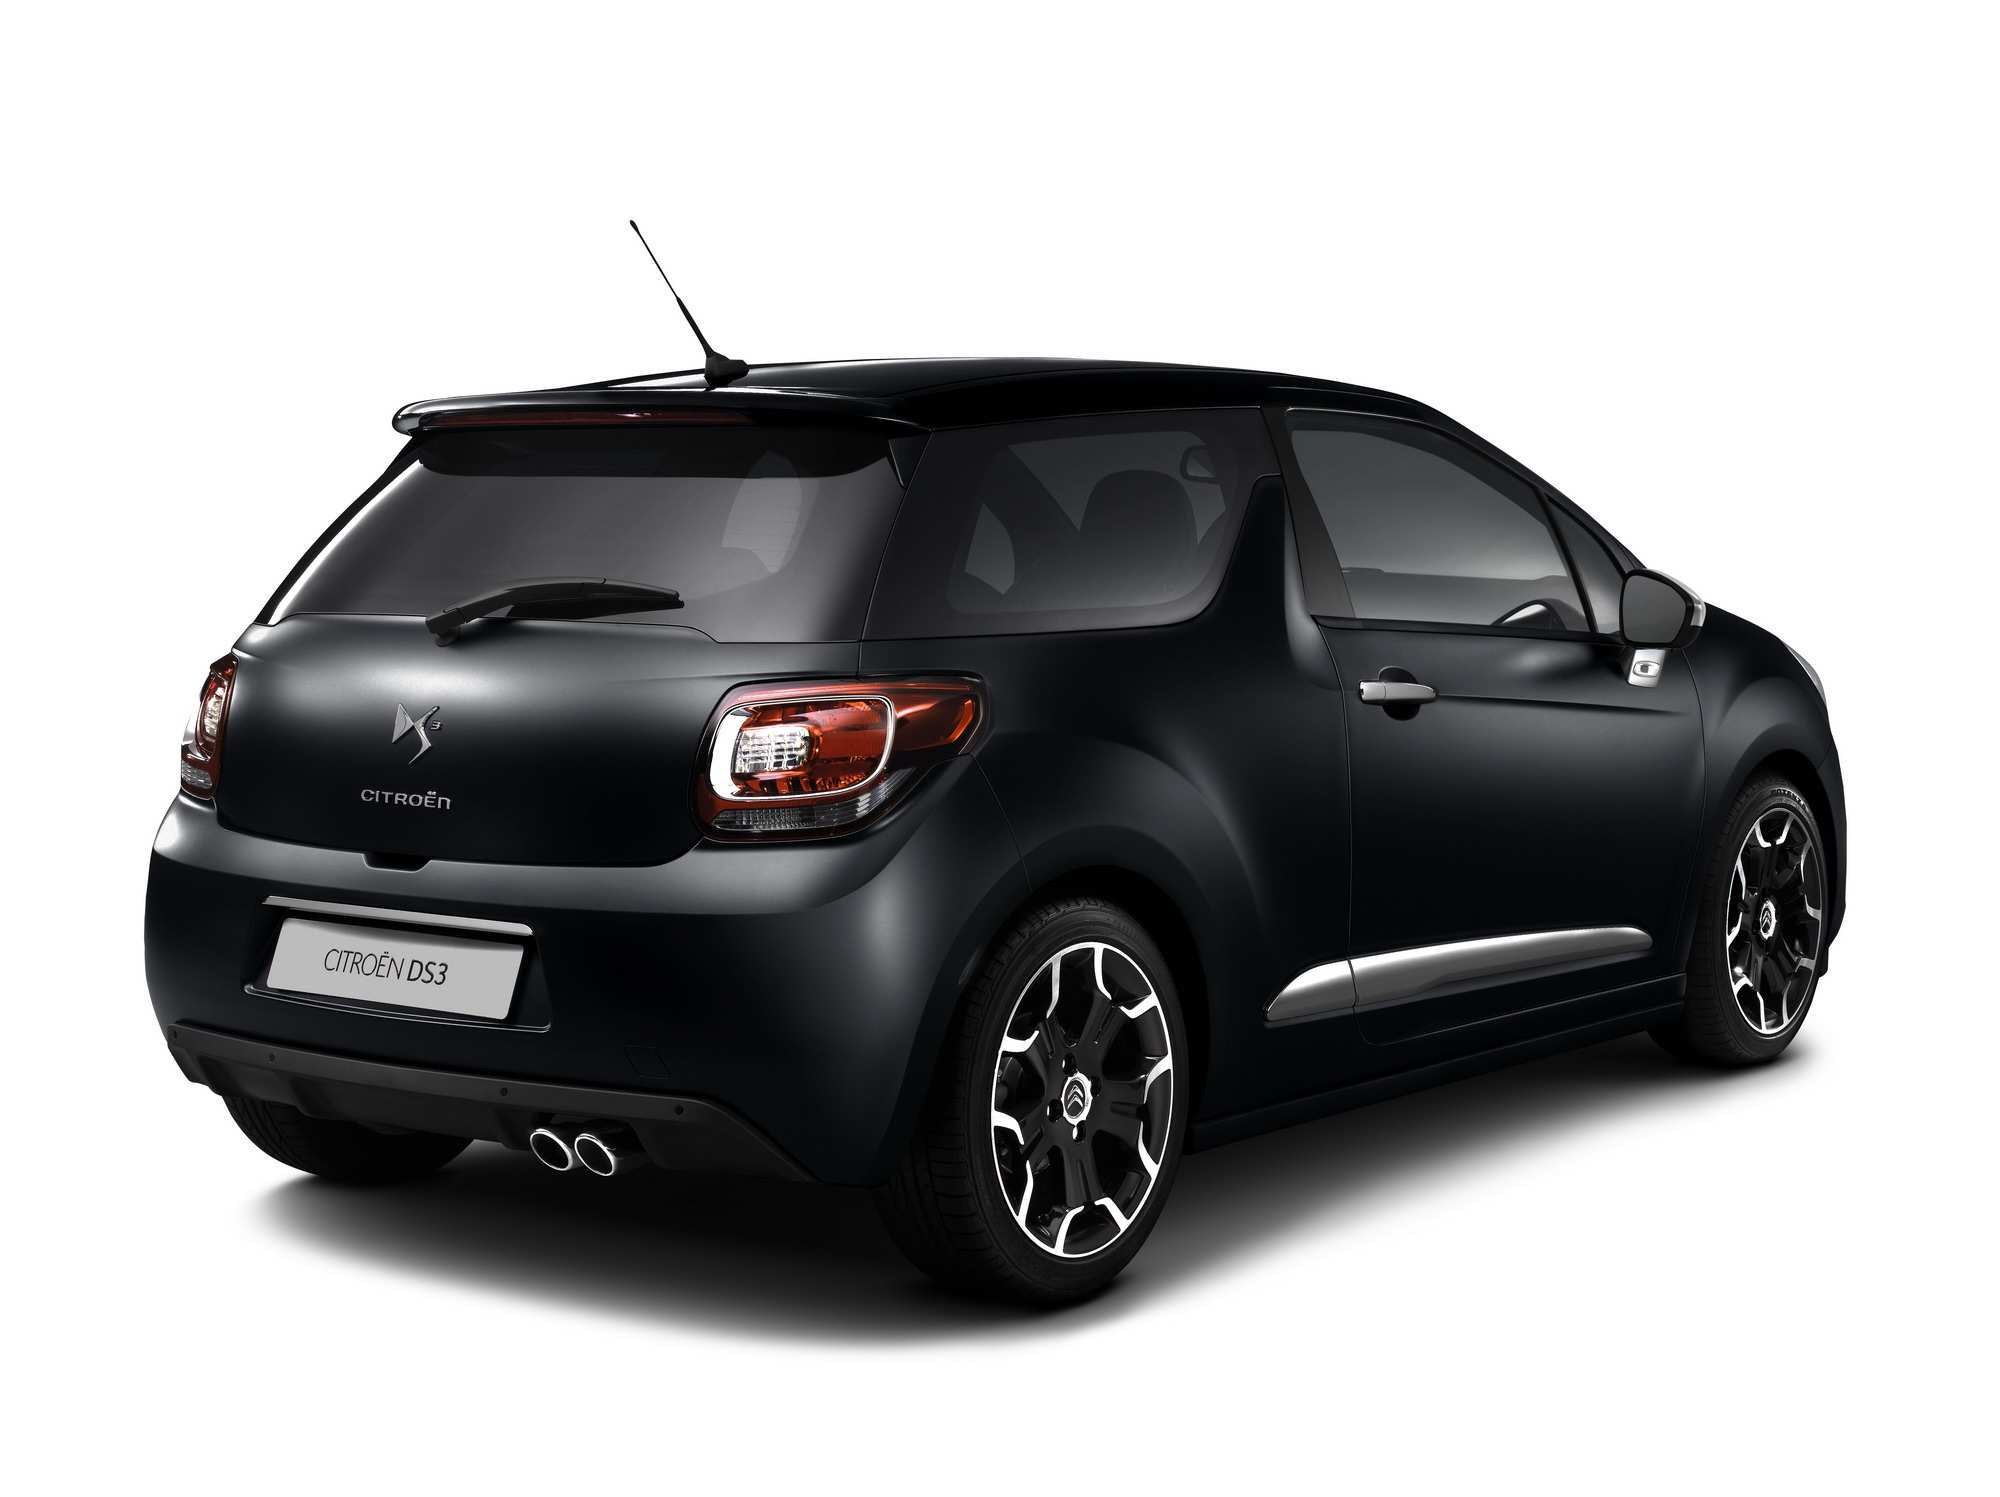 78 Gallery of Citroen Ds3 2020 Style with Citroen Ds3 2020